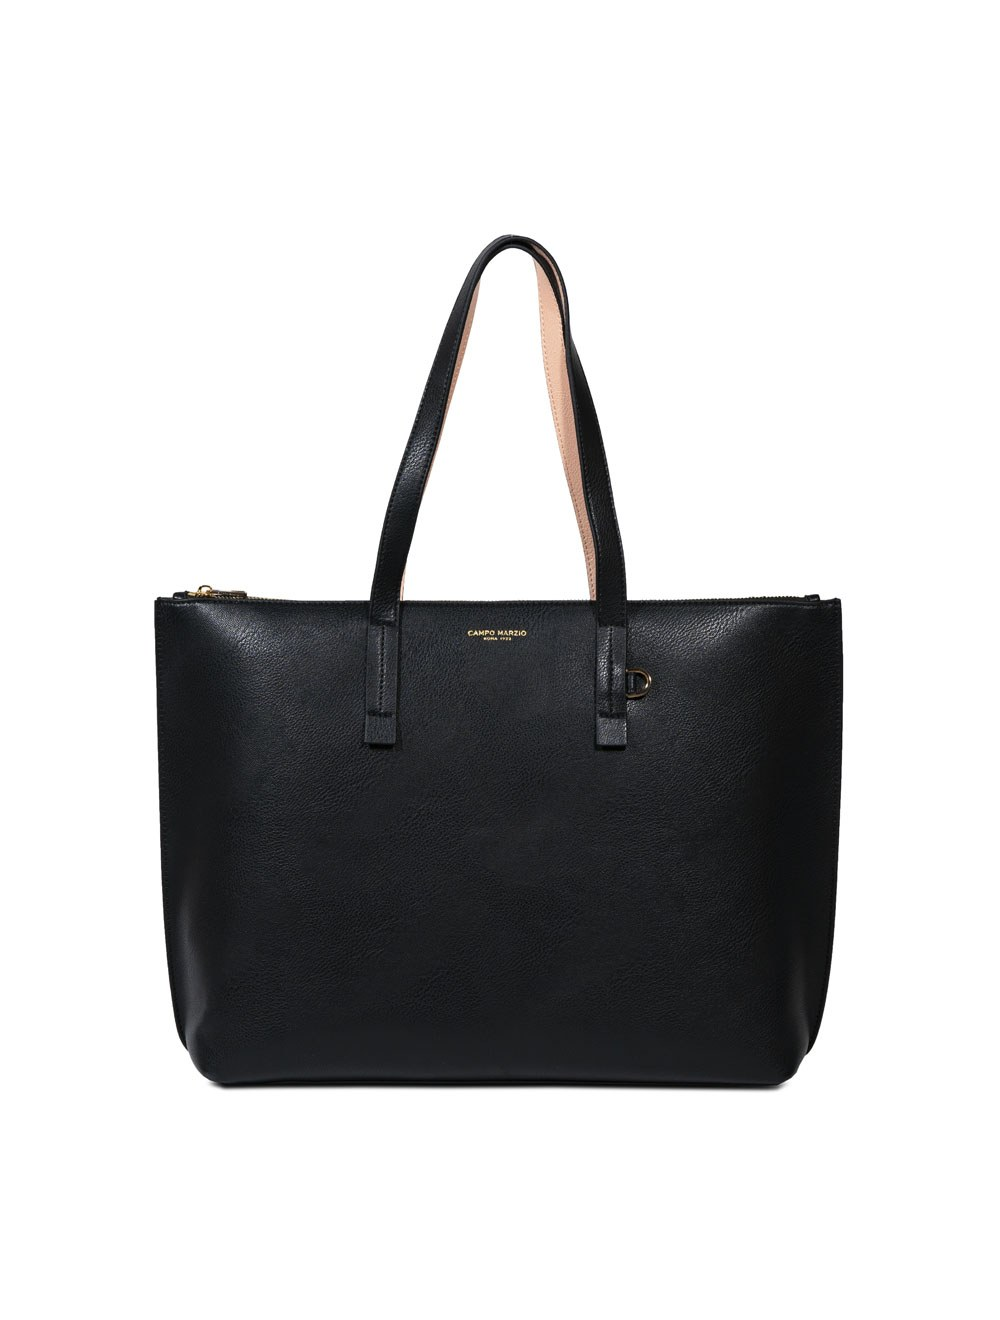 Tote Bag with Accessories (3 in 1) - Black